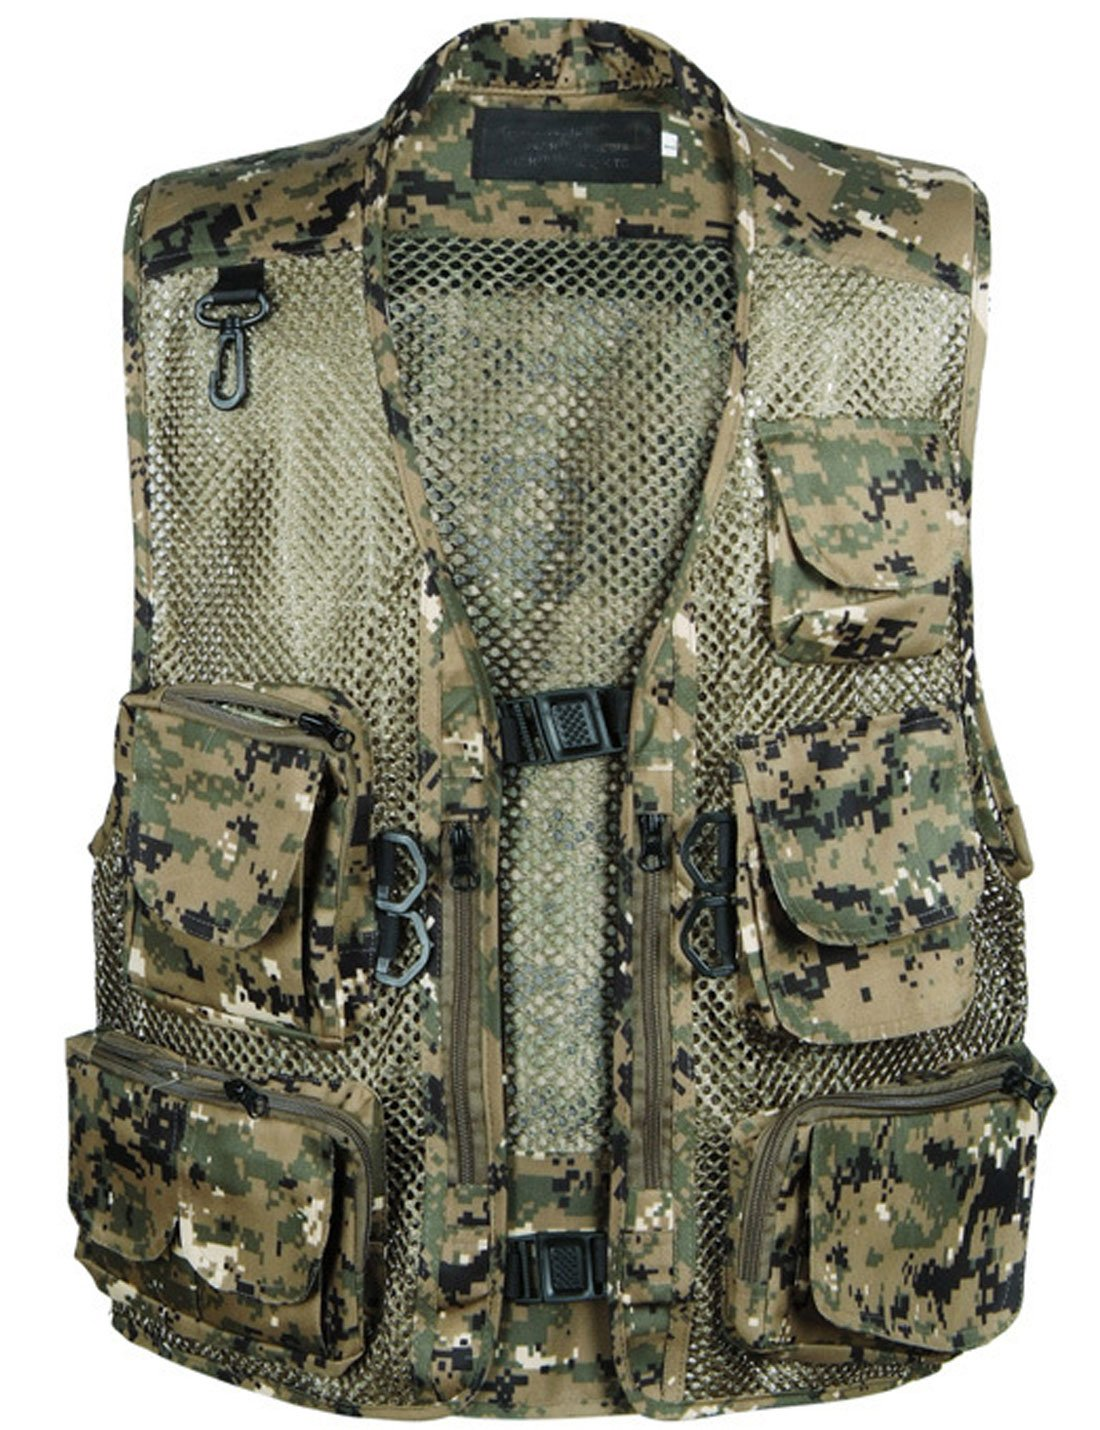 Zhusheng Men's Fishing Outdoor Utility Hunting Climbing Tactical Camo Mesh Removable Vest with Multiple Pockets